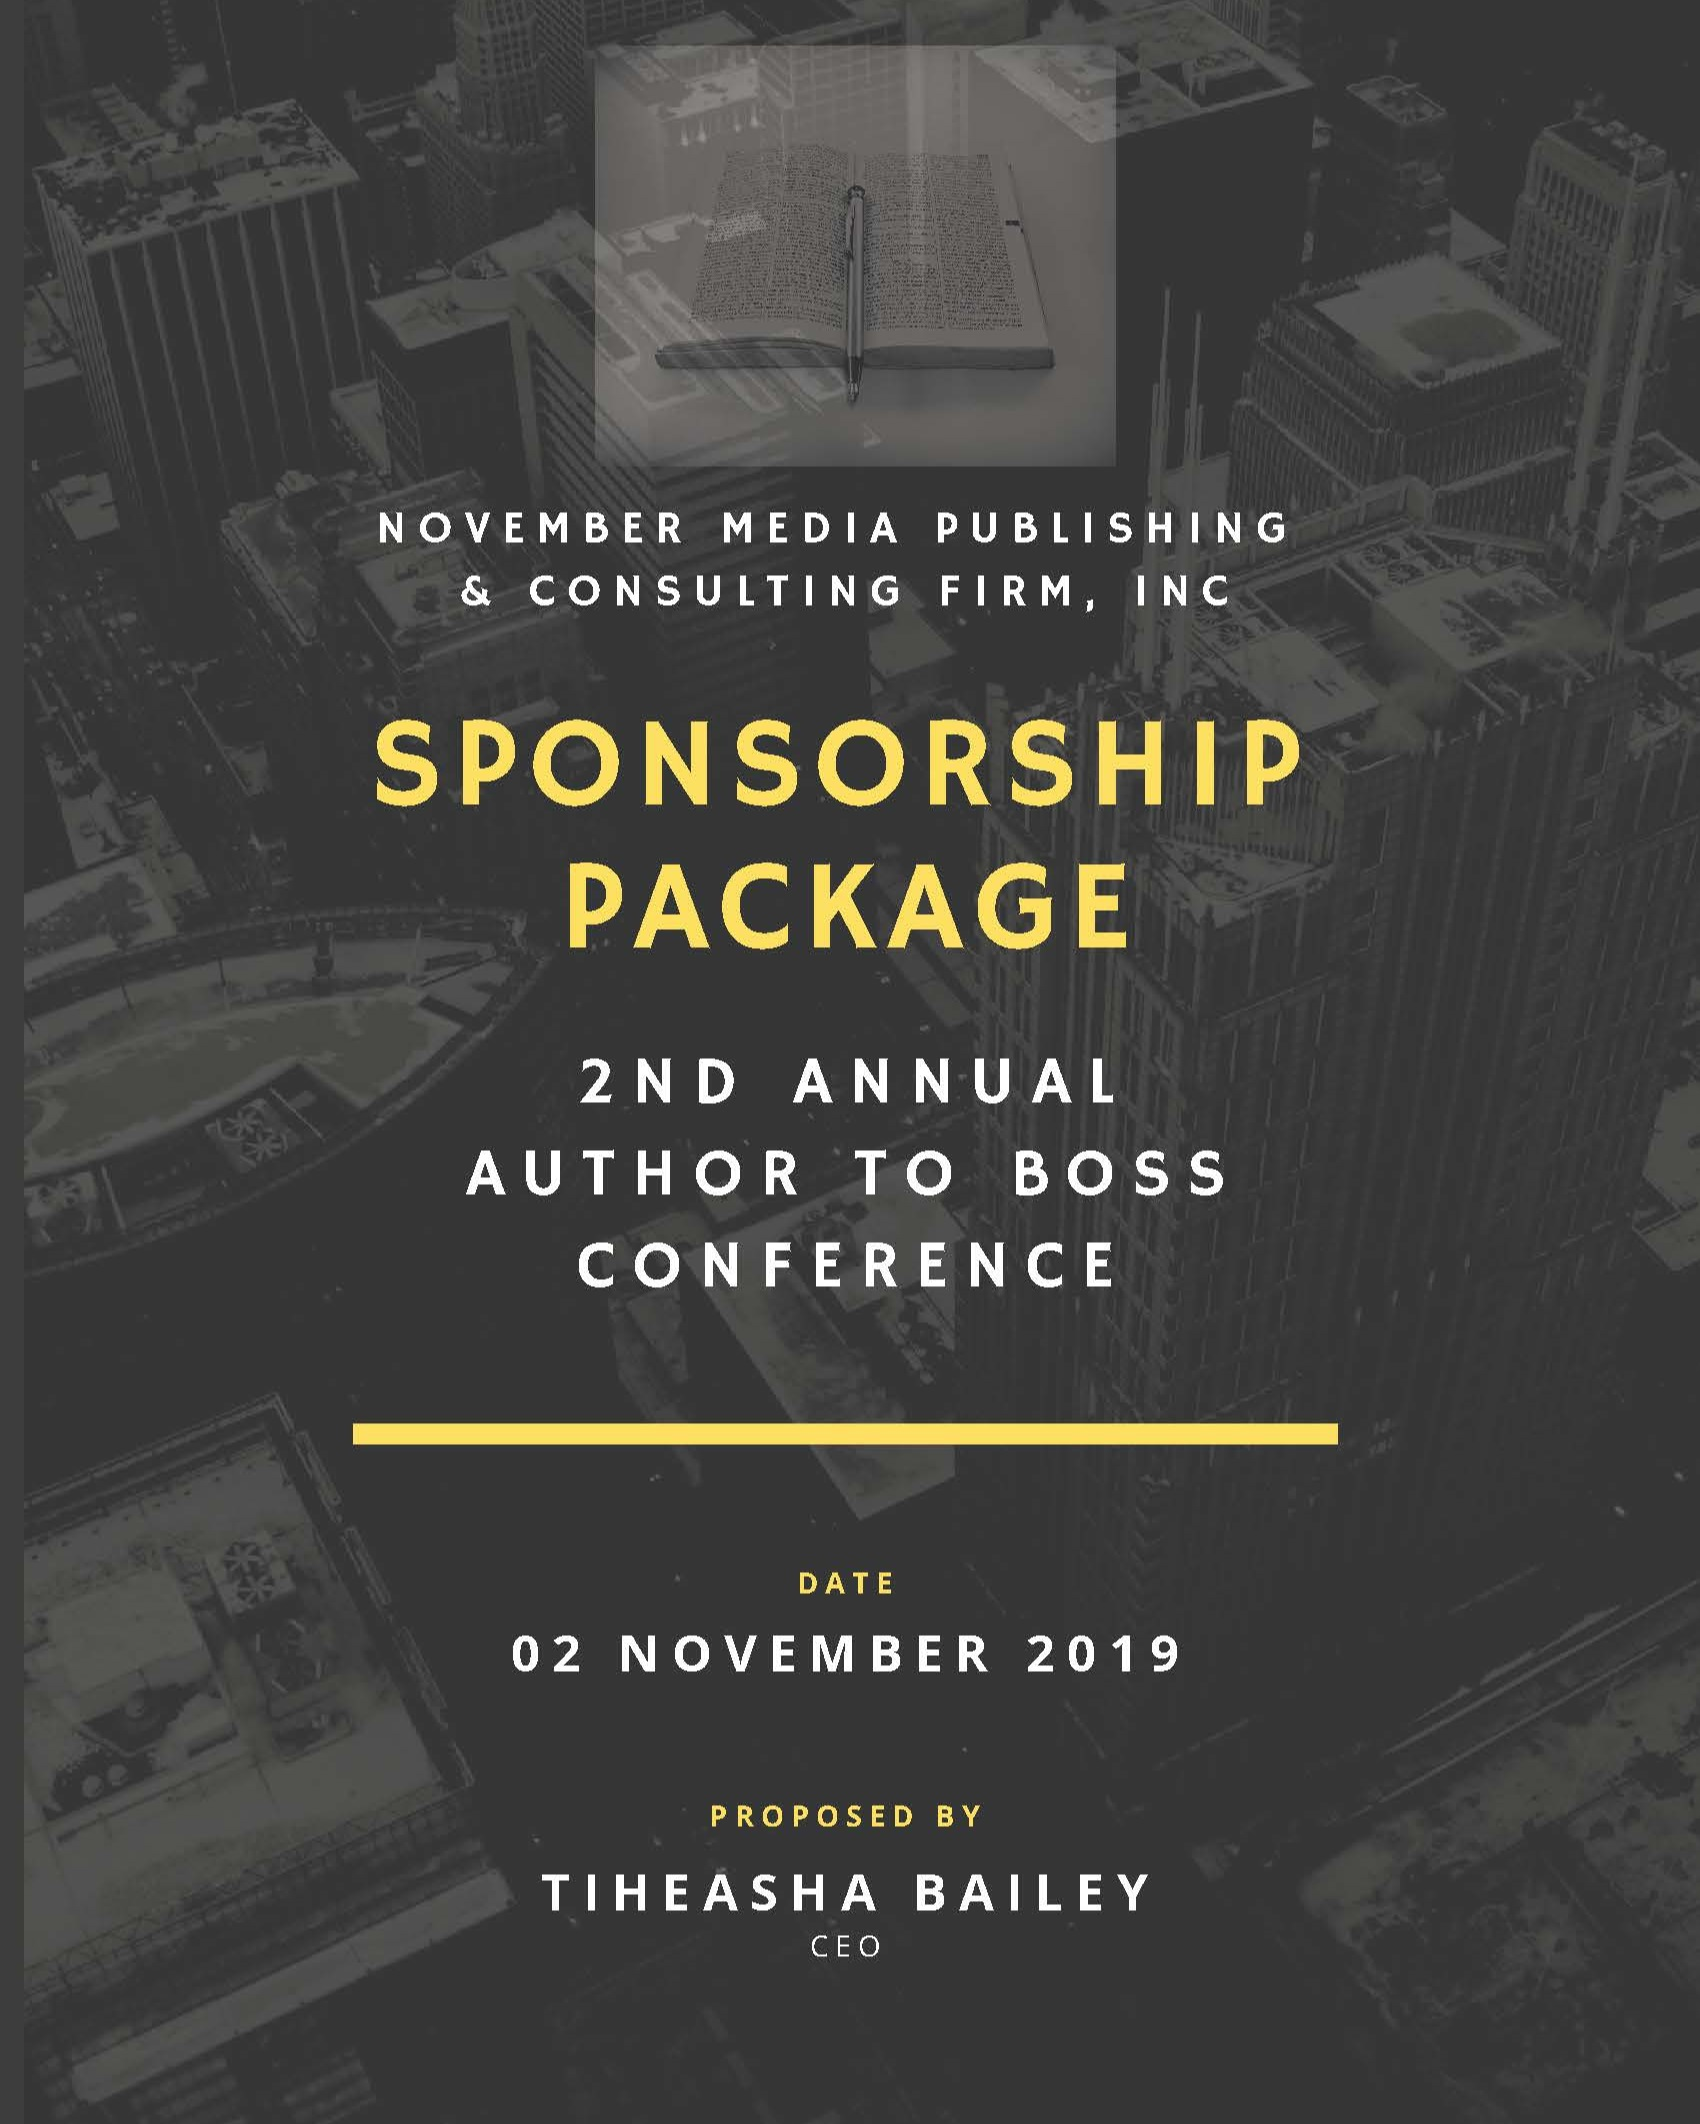 Author+to+Boss+2019+Conference+Sponsorship+Package_Page_1.jpg